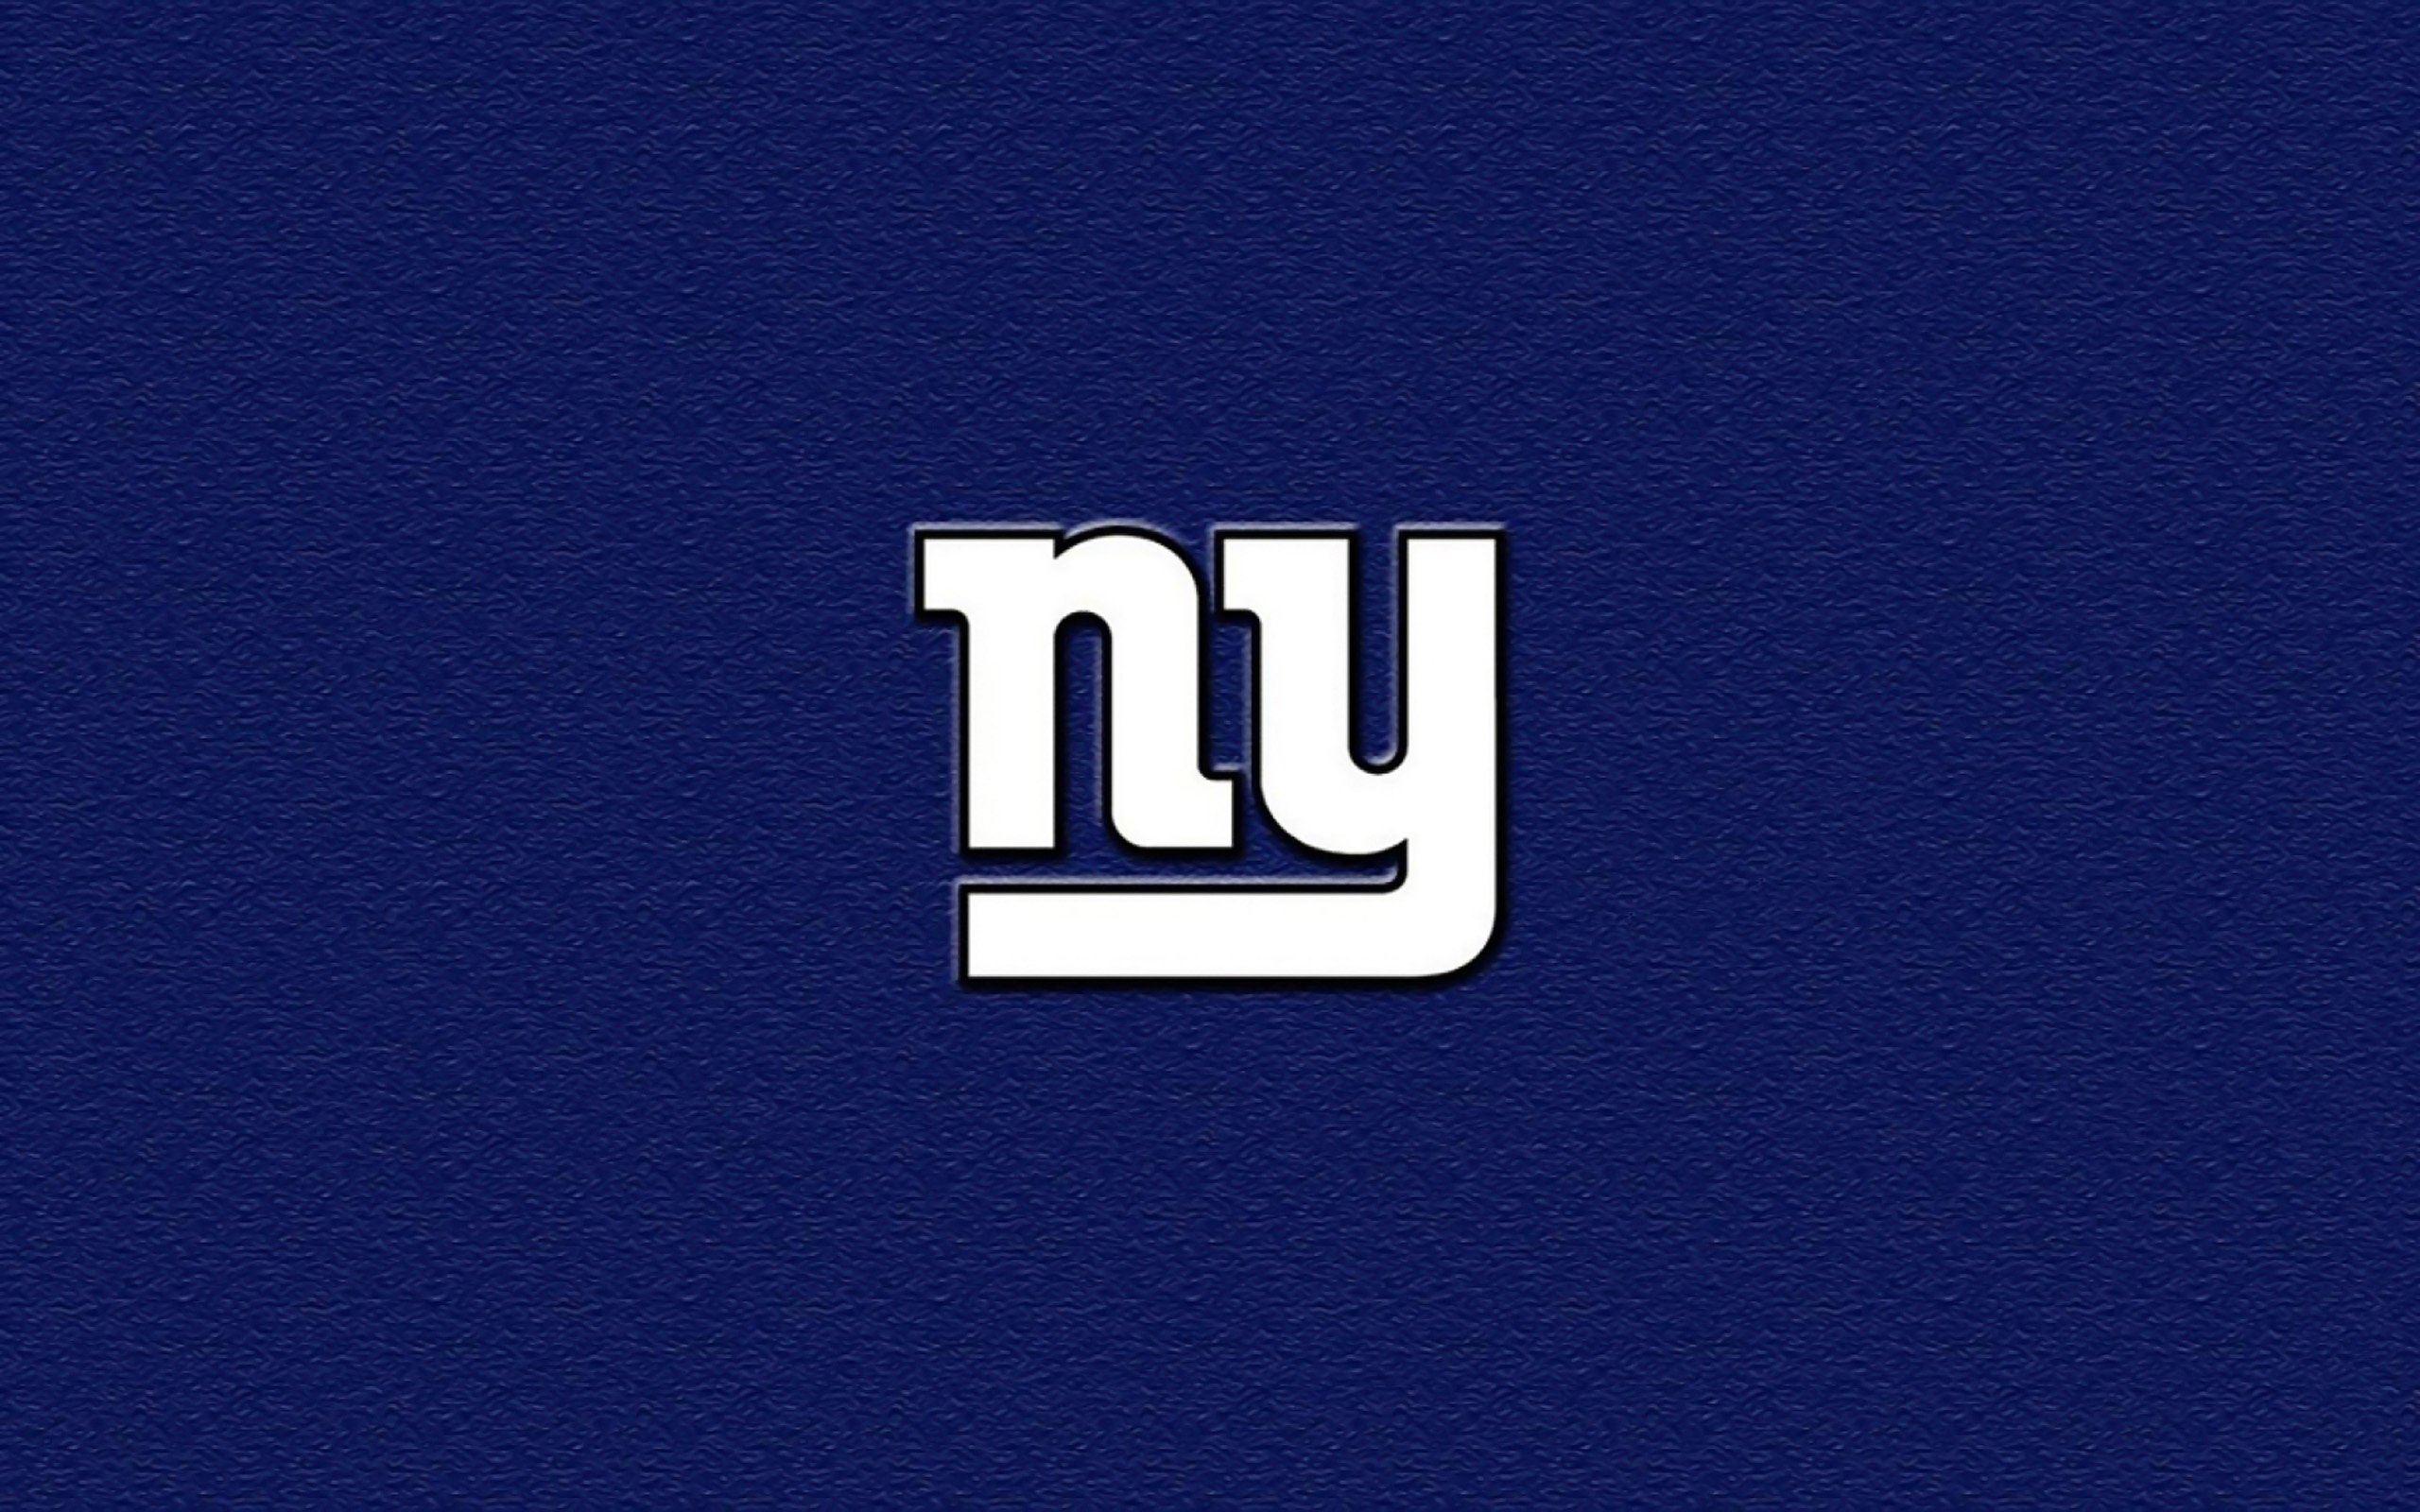 Free Download New York Giants Wallpapers Hd Download 2560x1600 For Your Desktop Mobile Tablet Explore 100 Ny Giants Wallpapers Ny Giants Wallpaper Ny Giants Wallpapers Ny Giants Wallpaper Hd